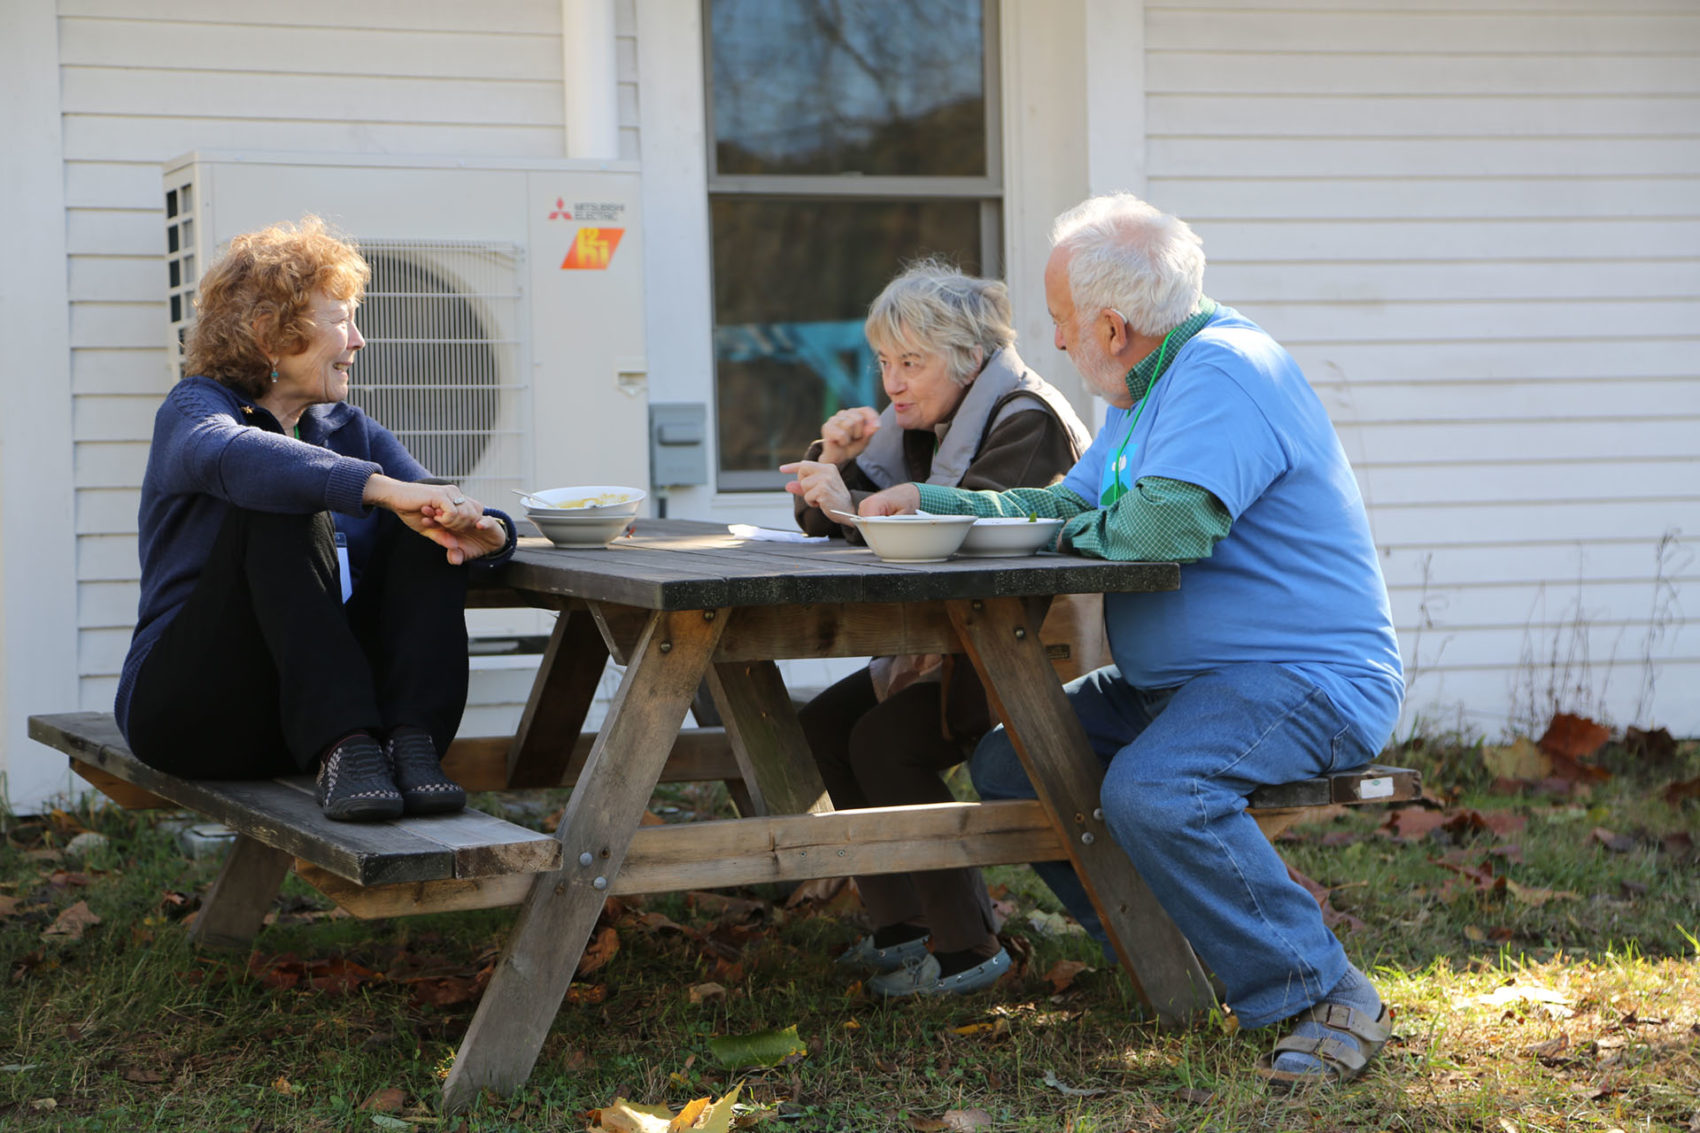 A few members of Hands Across the Hills take a break from a facilitated dialogue session in Leverett, Mass., in October 2017. (Garrison Greenleaf/Courtesy of Hands Across the Hills)